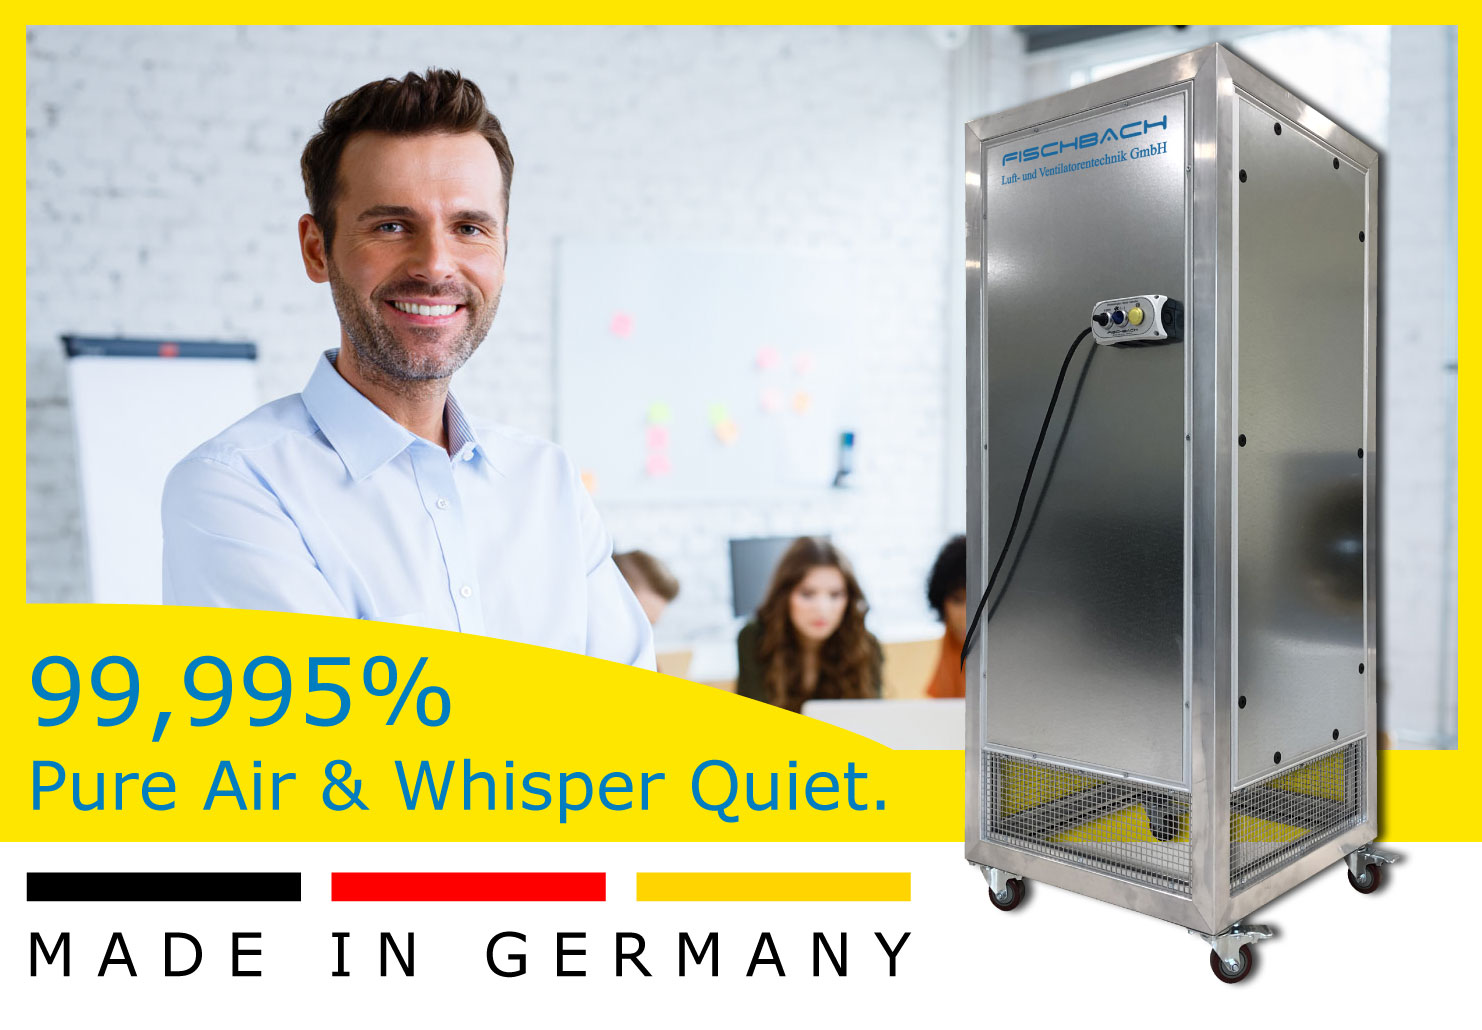 Fischbach Purifier - 99,995% Pure Air - Made in Germany